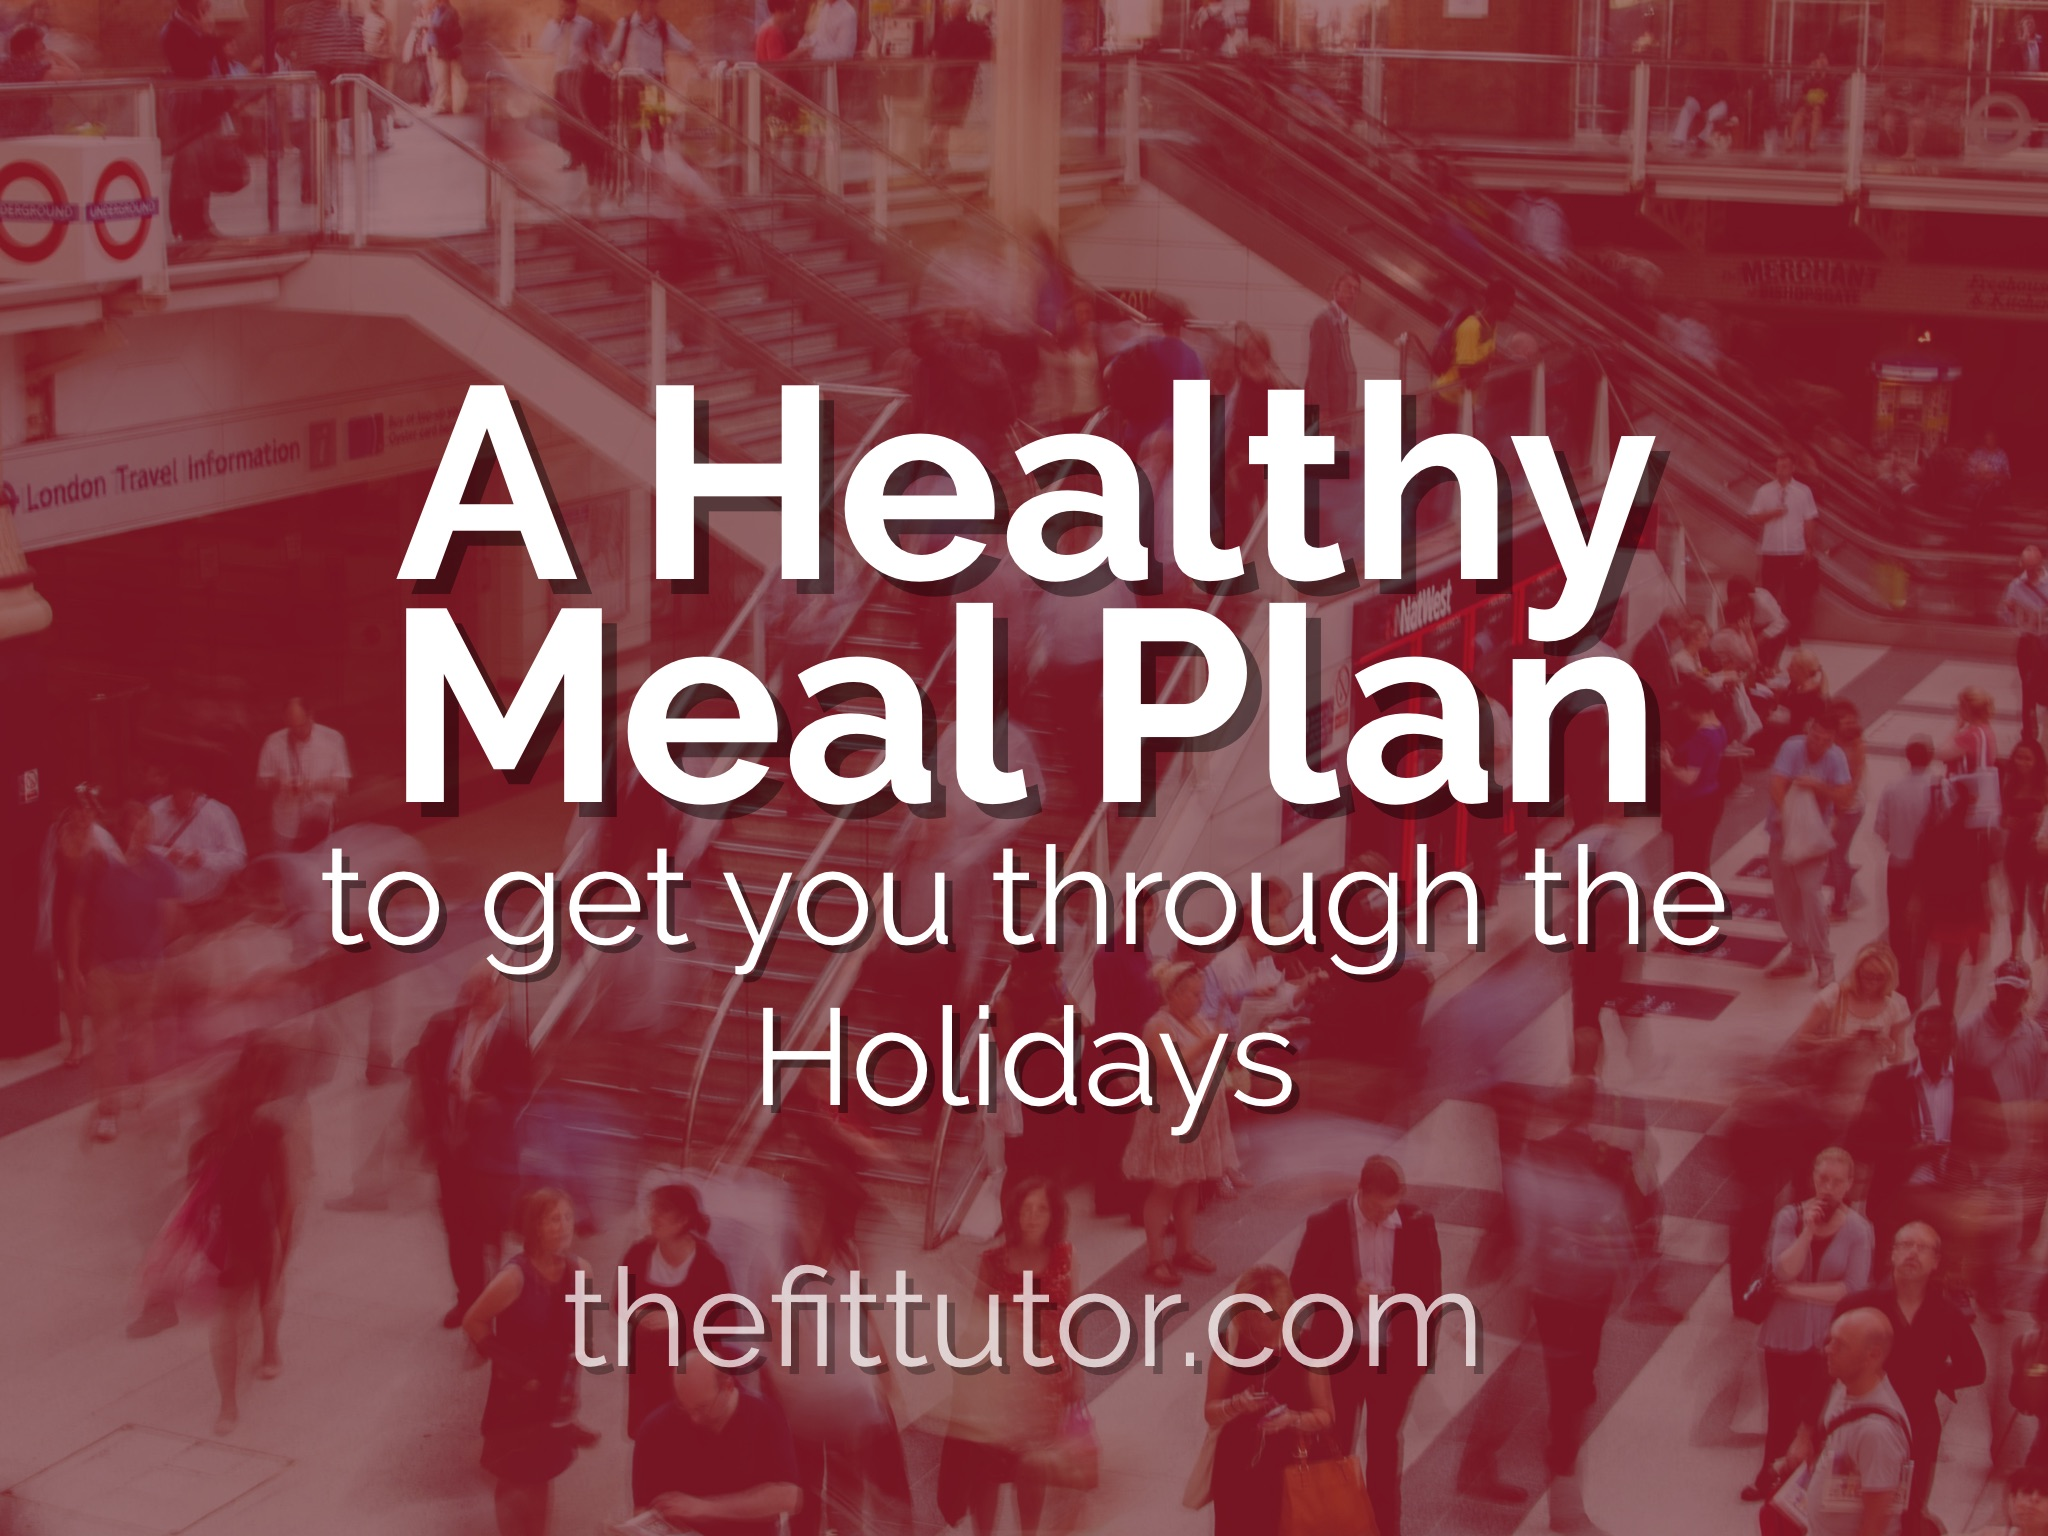 A Healthy meal plan to get you through the holidays! 1.5 months of FREE weekly meal plans!